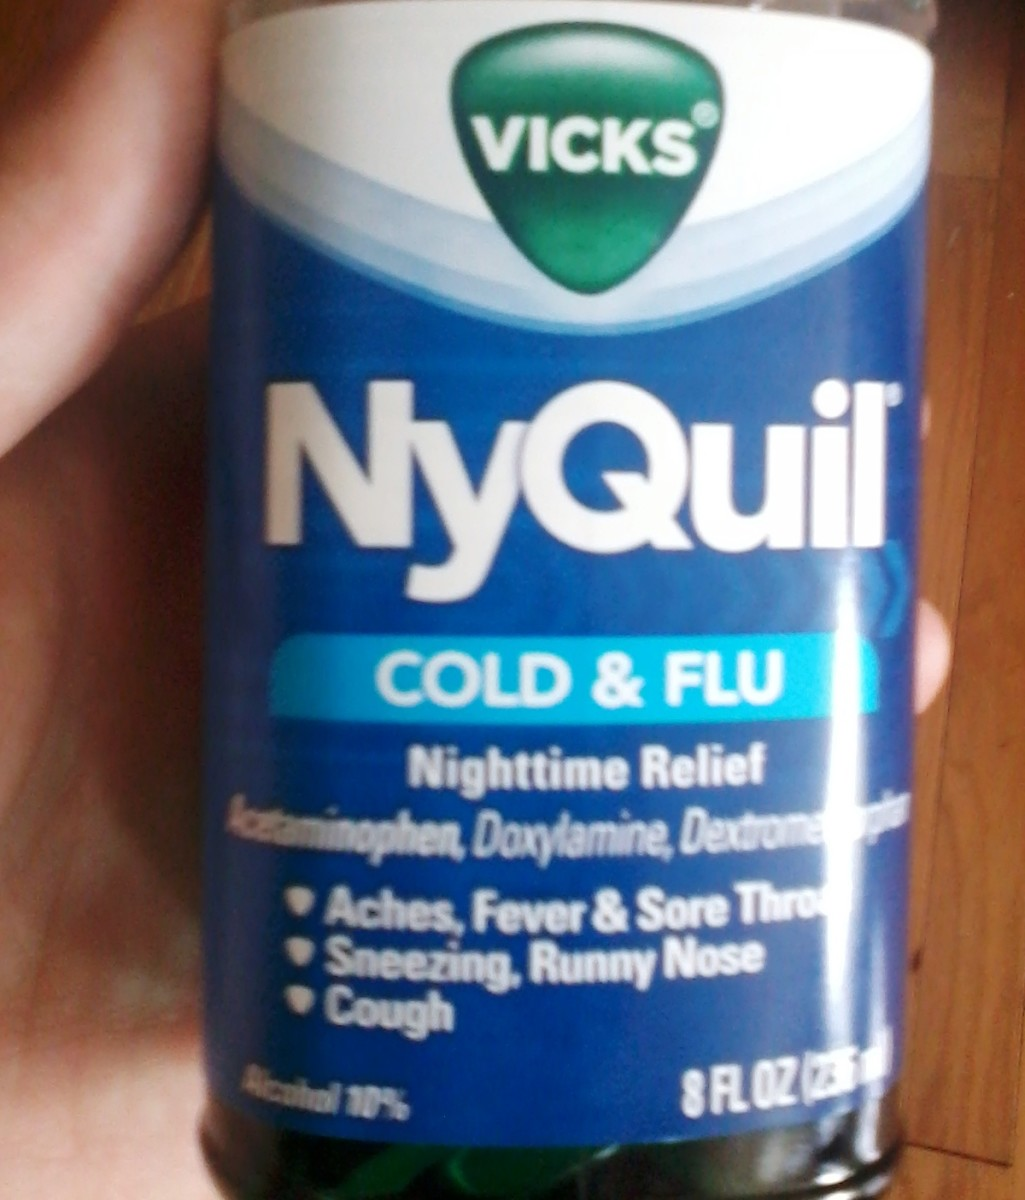 Acetaminophen is often hidden in cold medications like NyQuil.